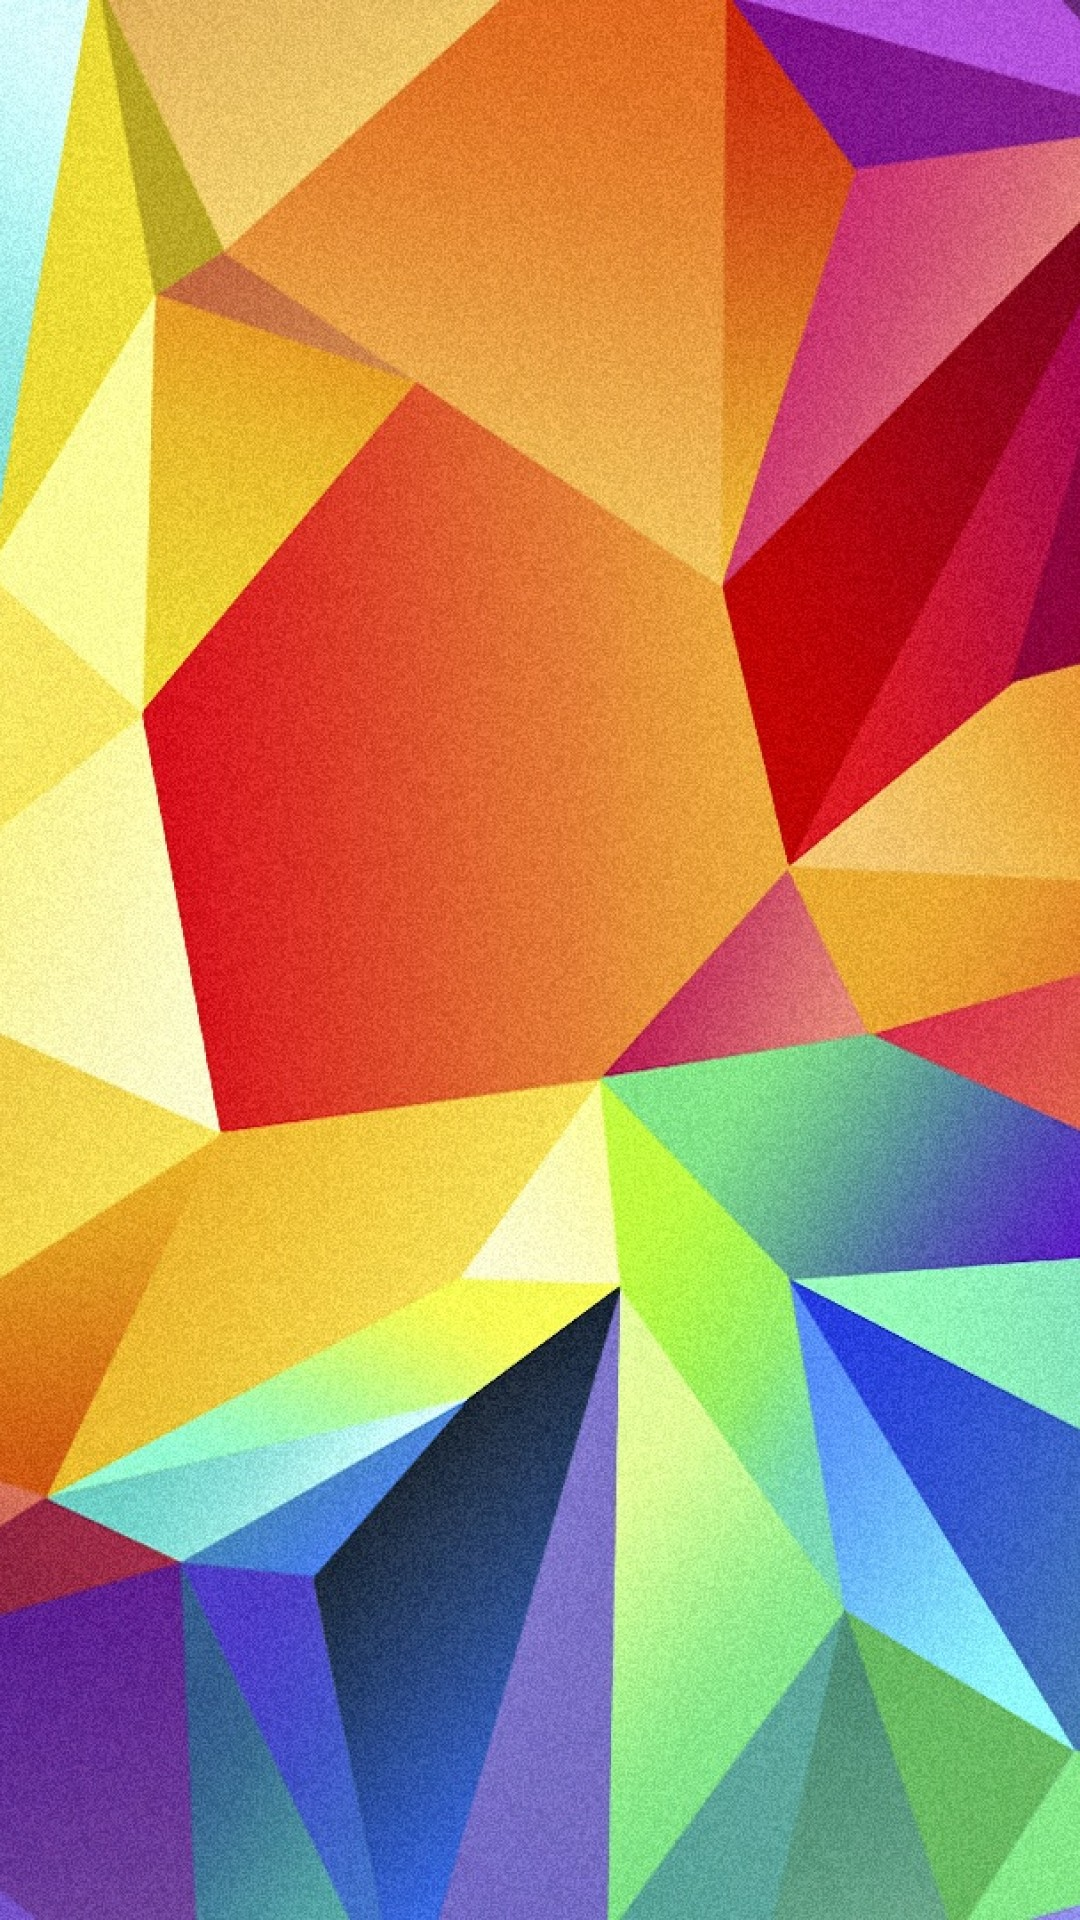 polygon 1080x1920 4k hd wallpaper android triangle background orange 3522